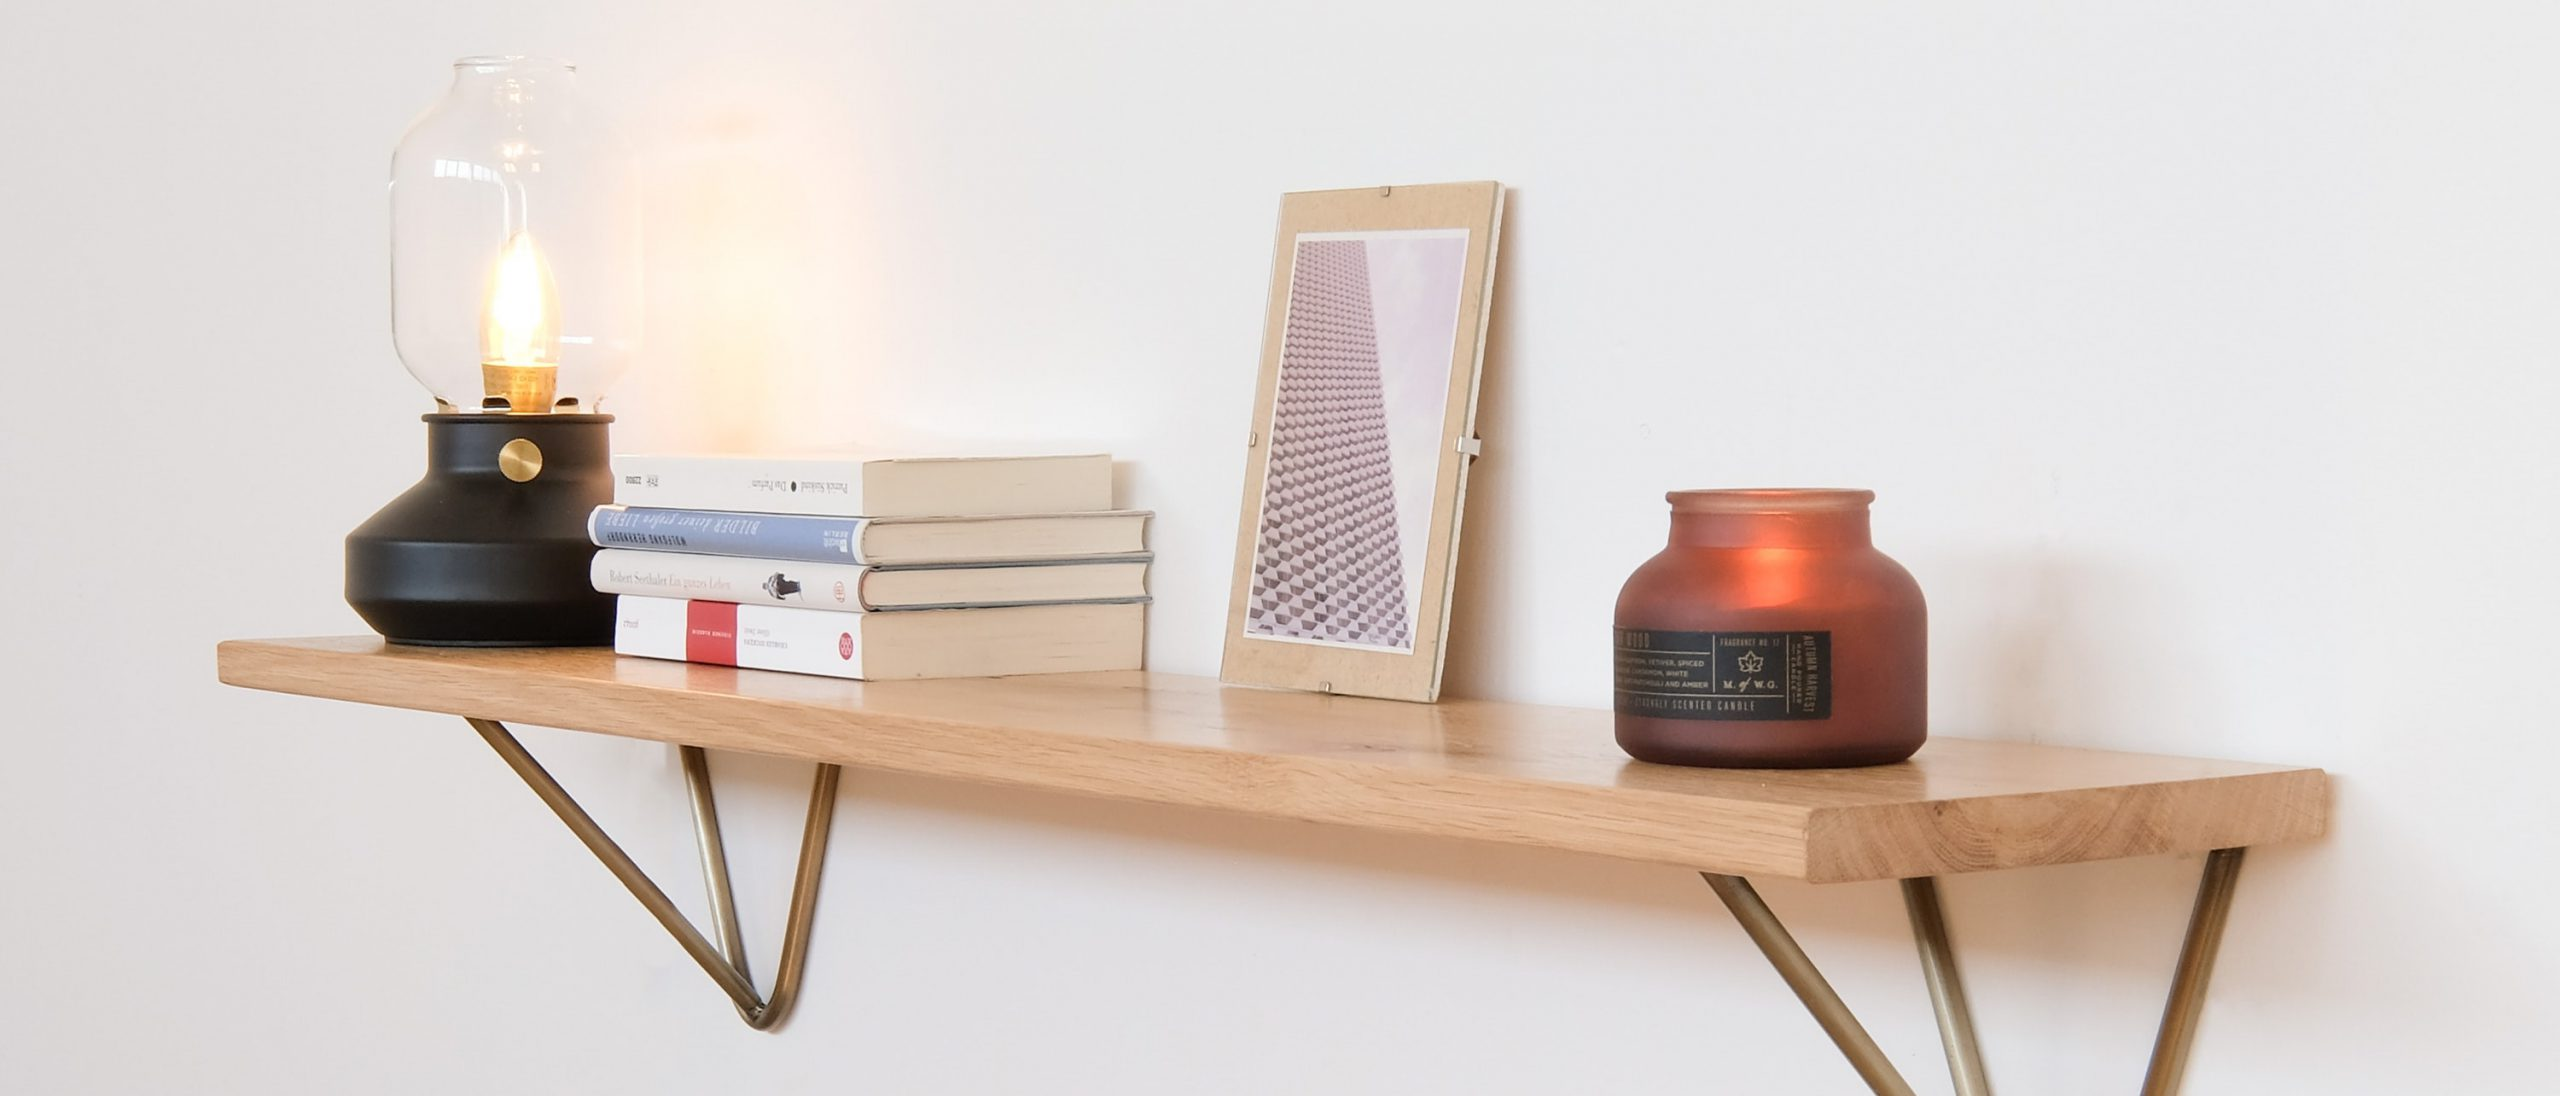 Single Floating Shelf containing candles and books